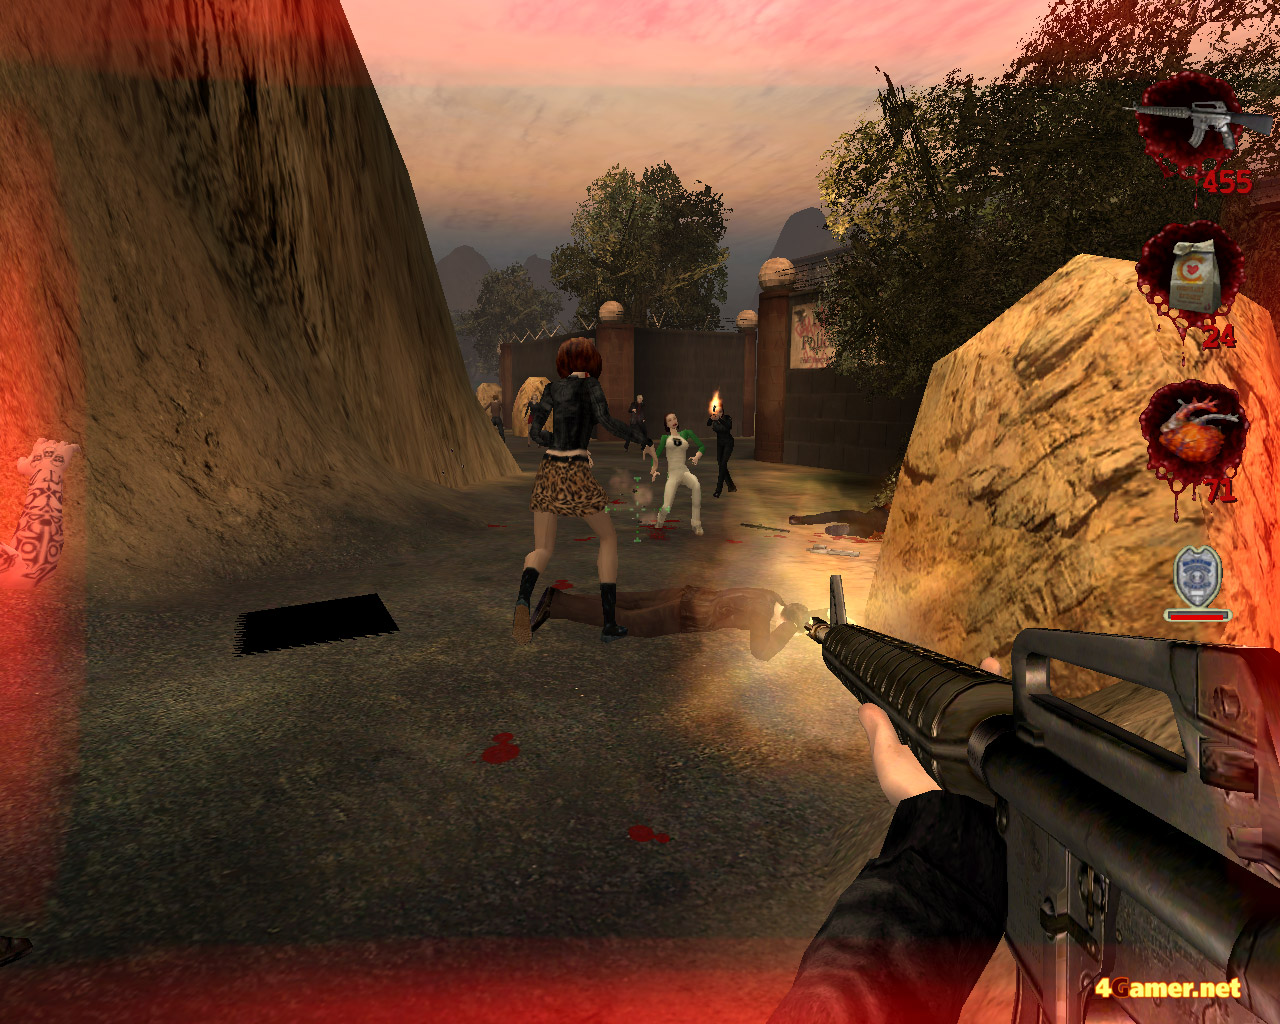 http://www.4gamer.net/review/postal2/img/20.jpg